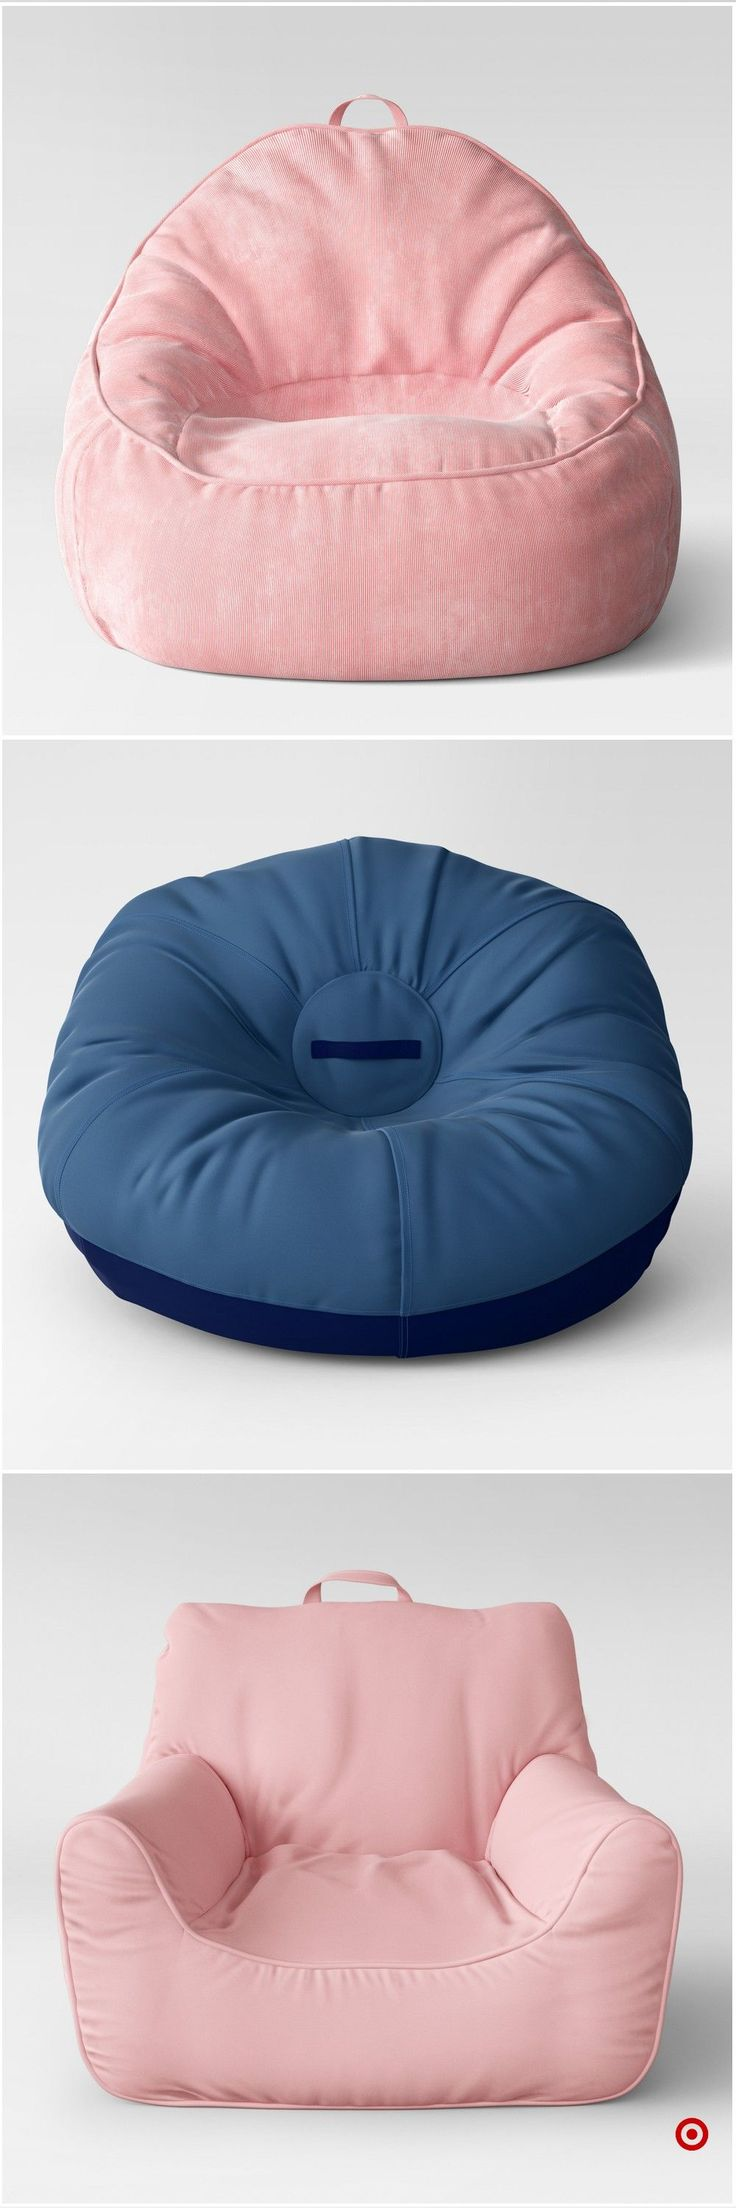 Shop Target For Bean Bag Chair You Will Love At Great Low Prices Free Shipping